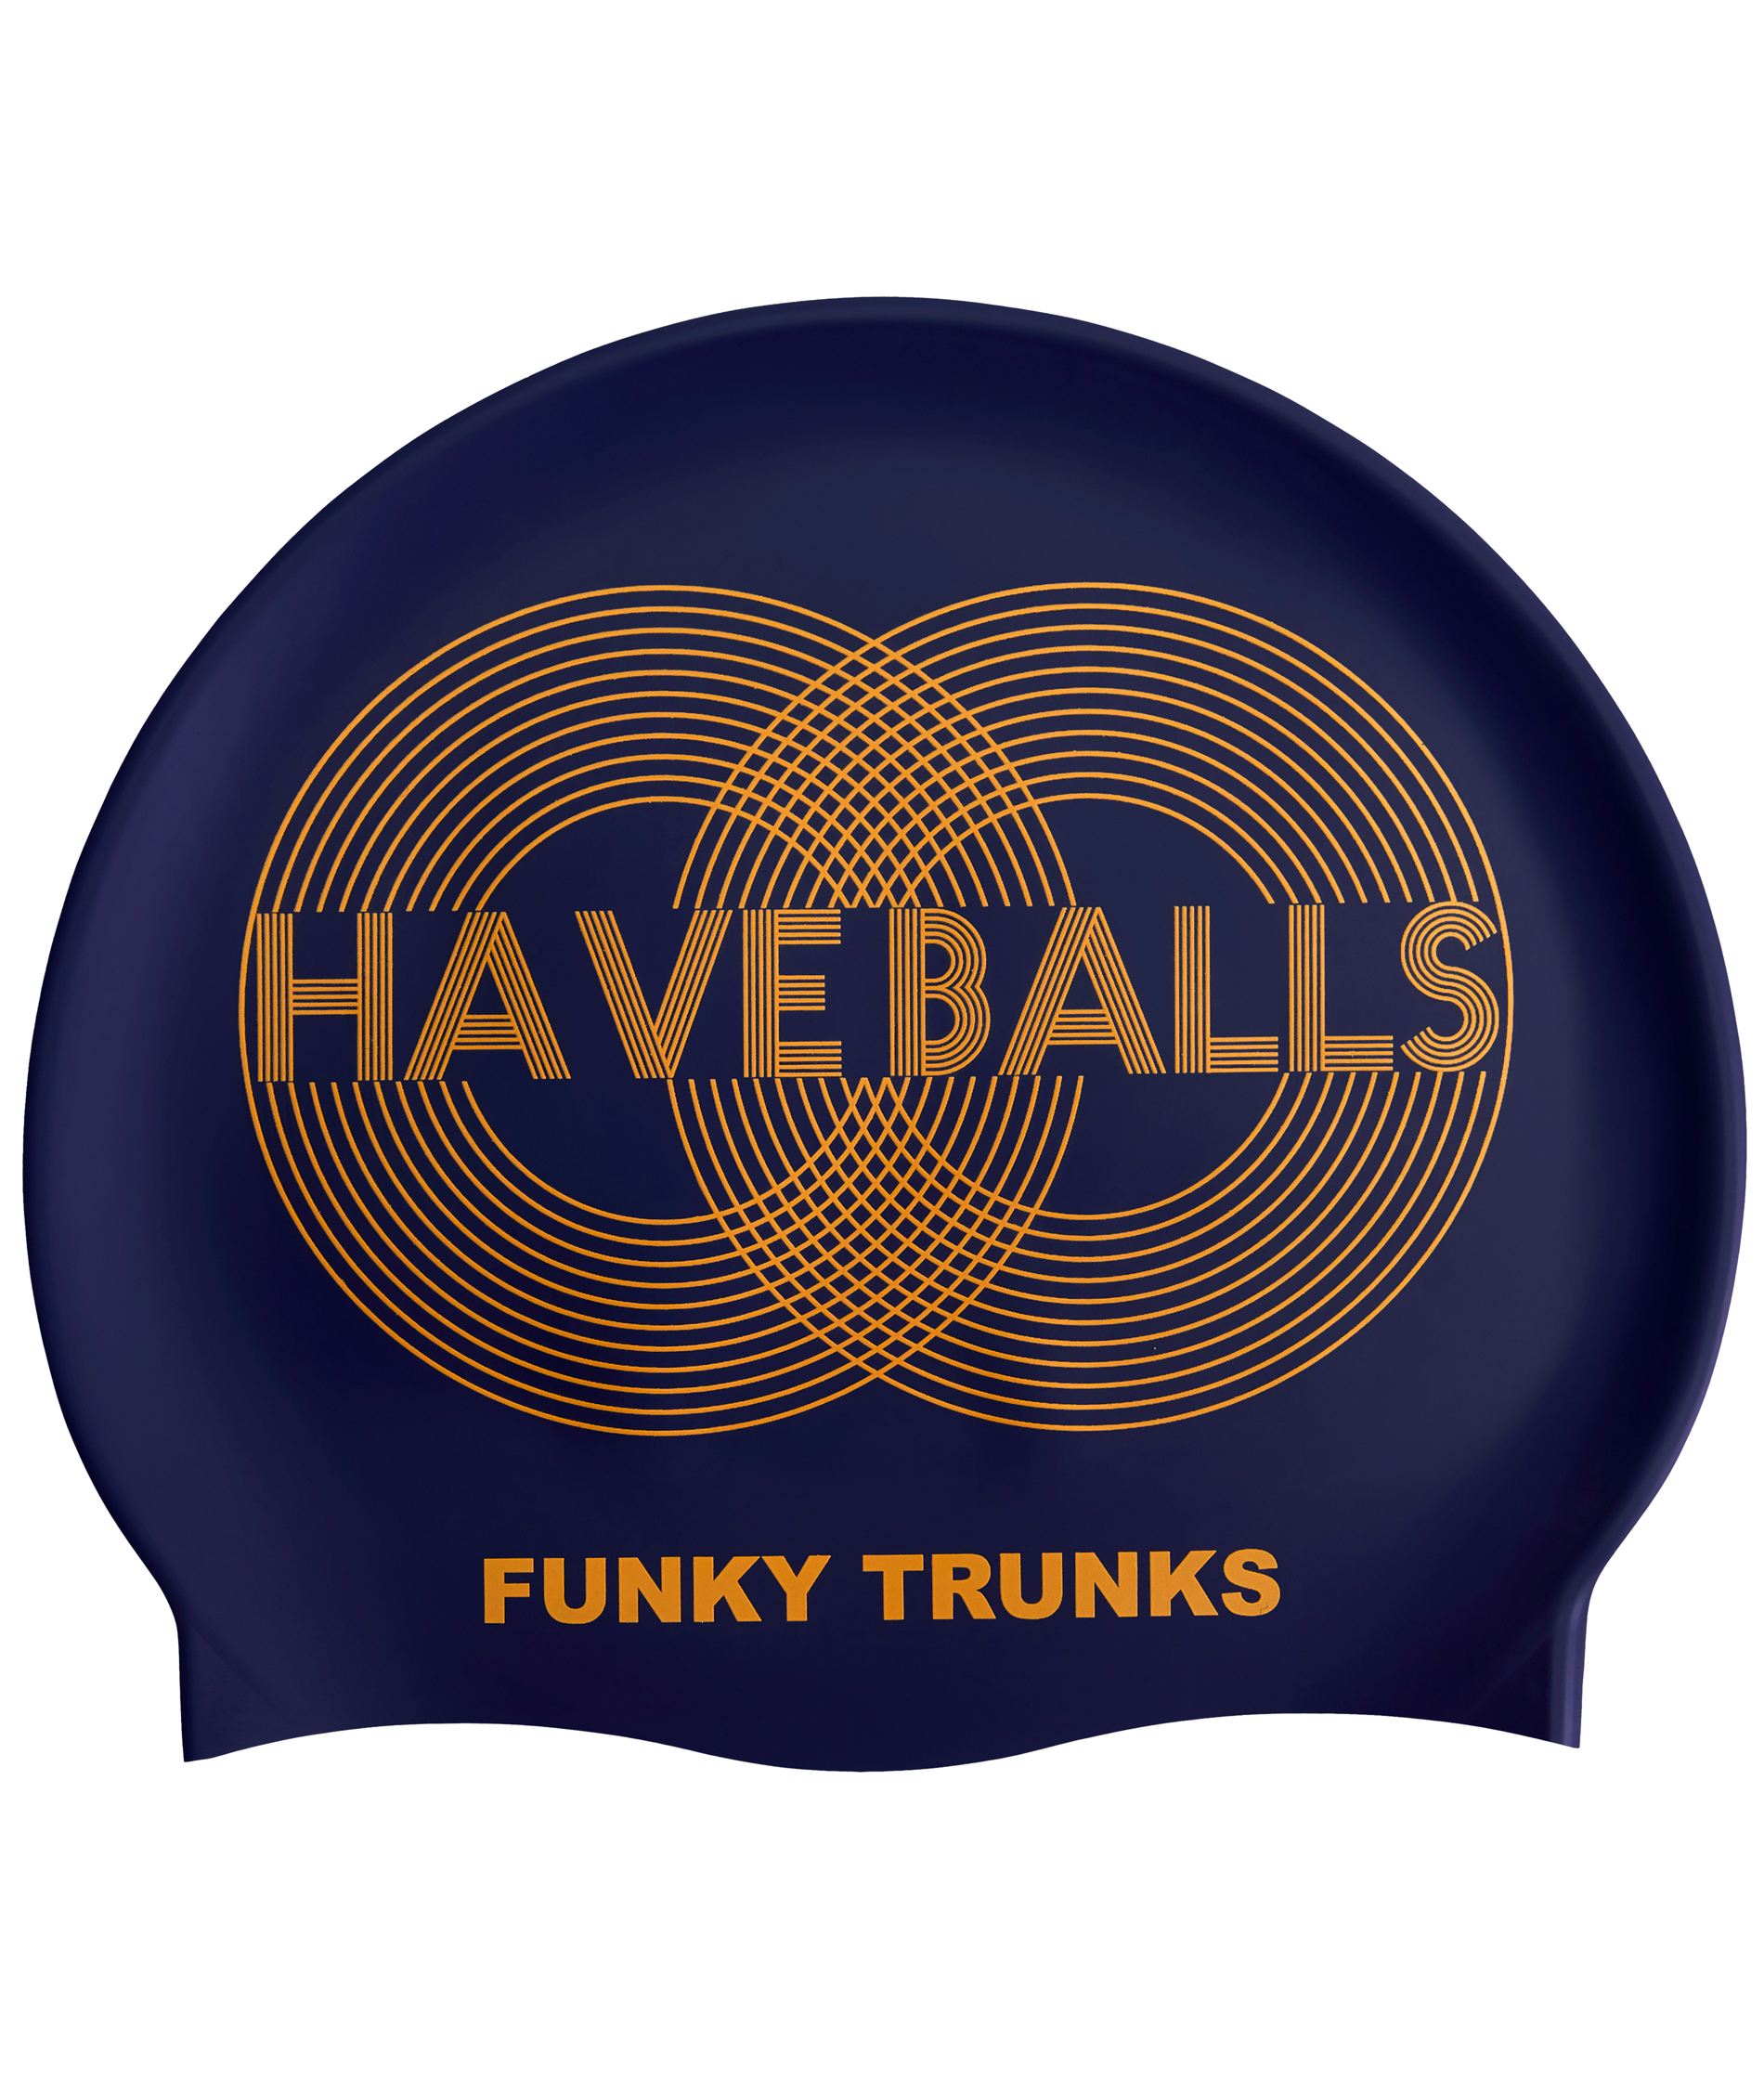 Funky Trunks Golden Balls Swim Cap